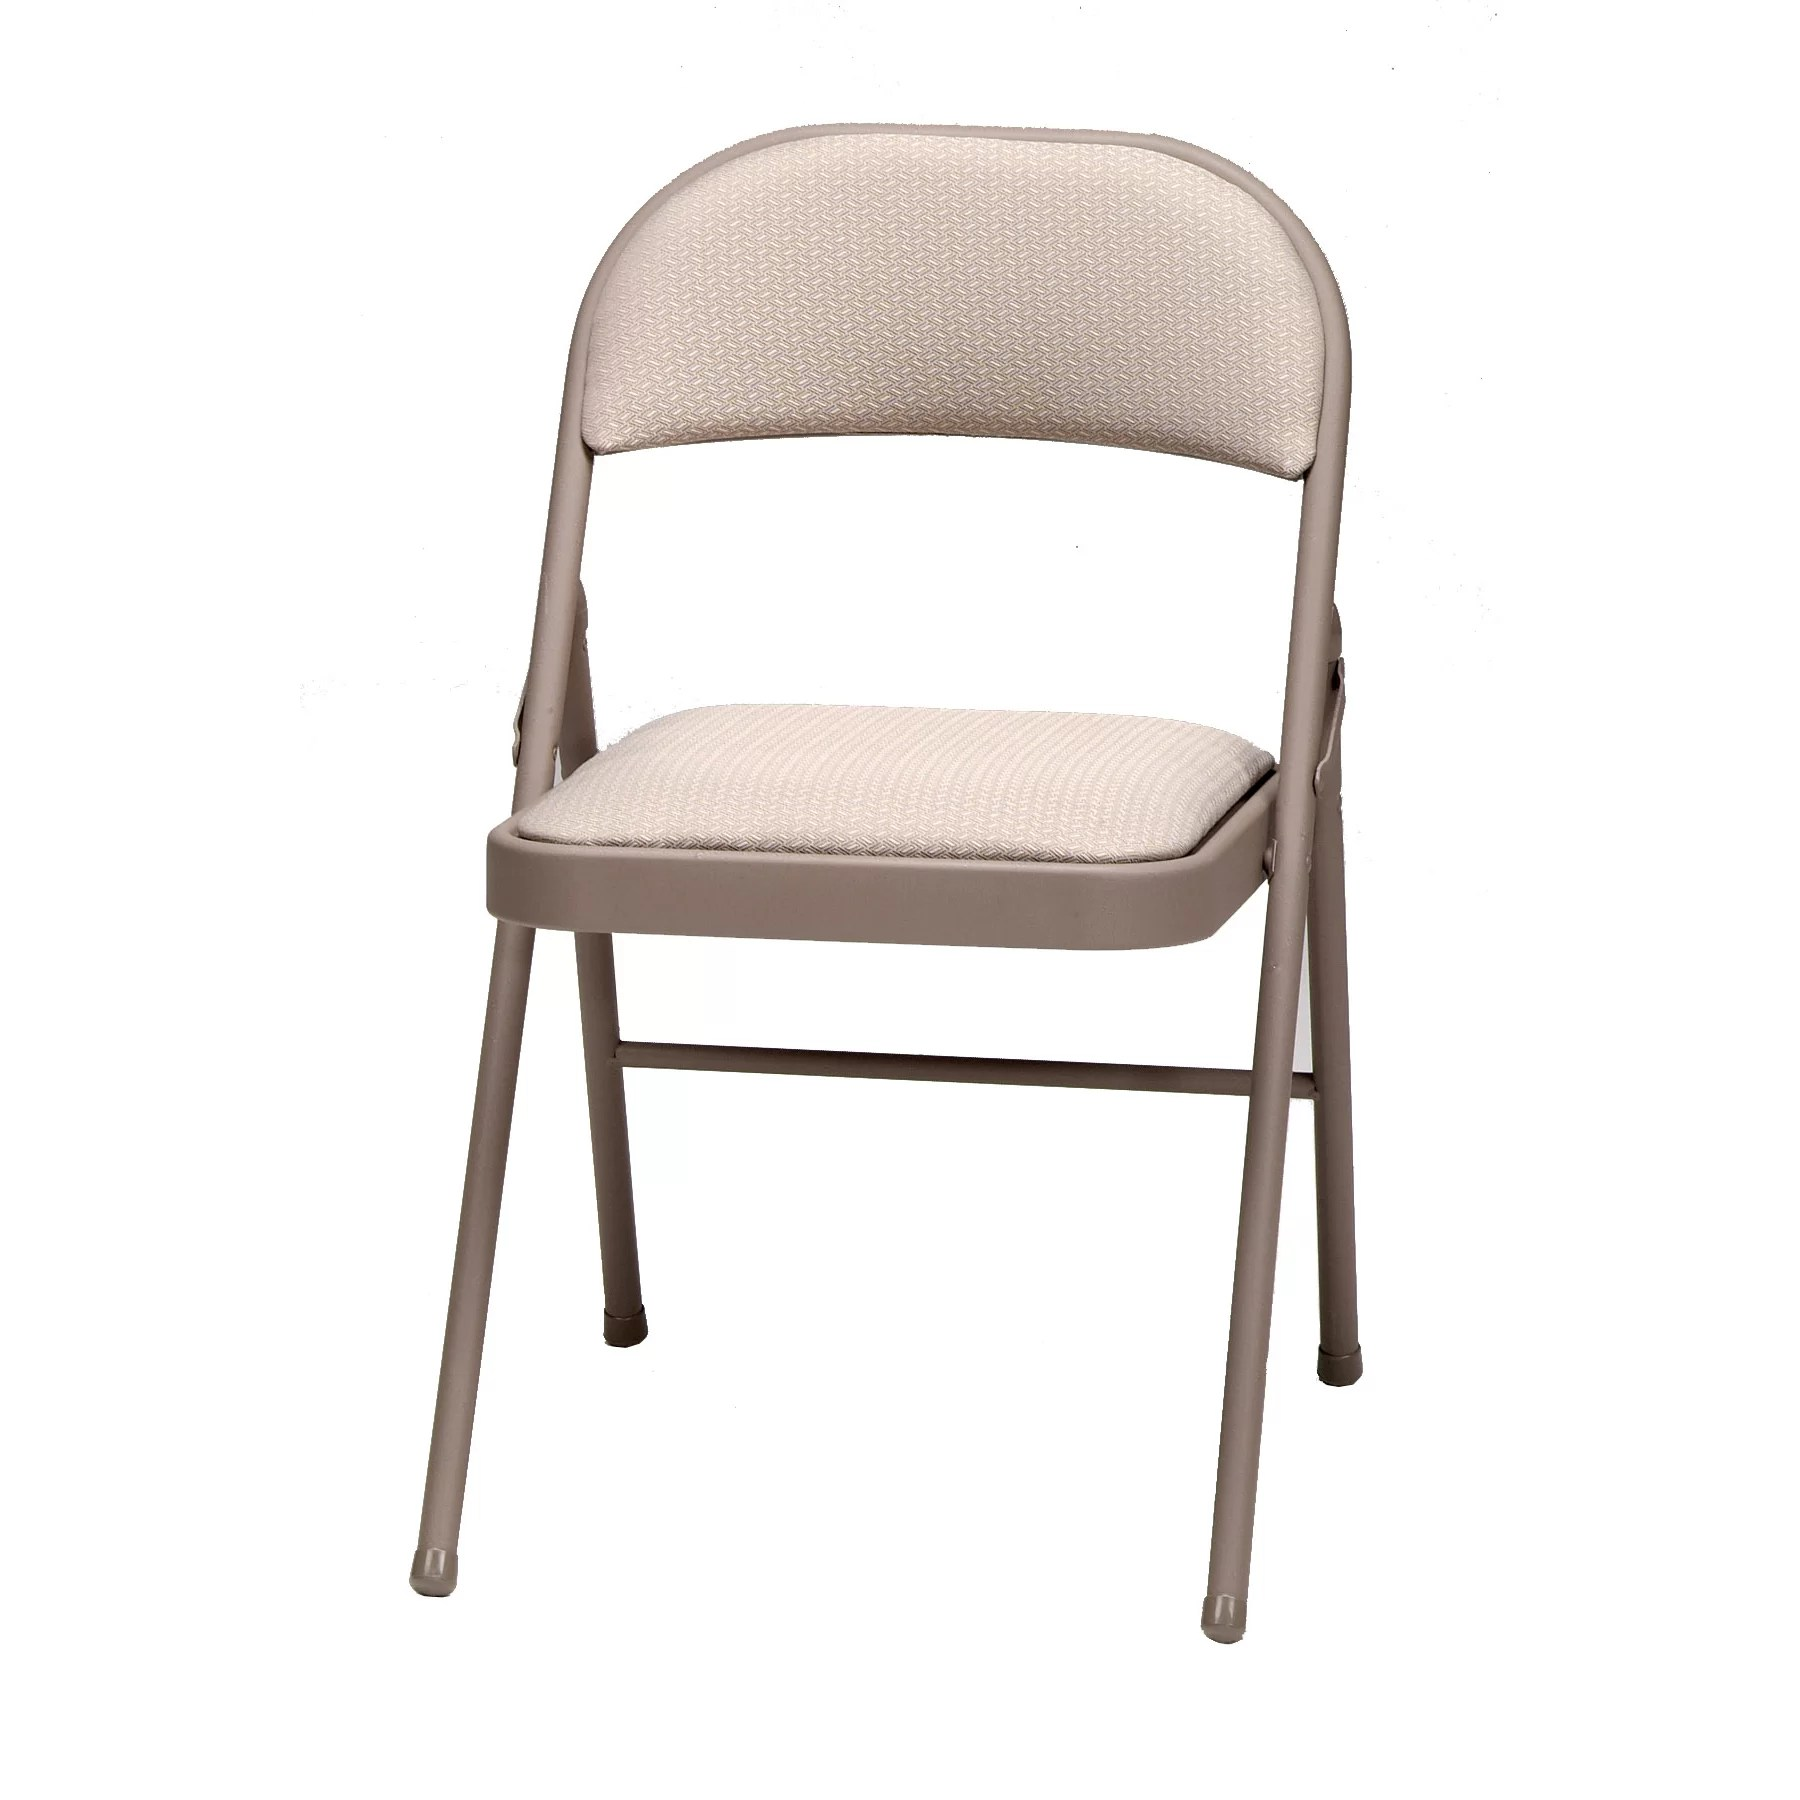 Fabric Folding Chairs Meco Deluxe Fabric Padded Folding Chair And Reviews Wayfair